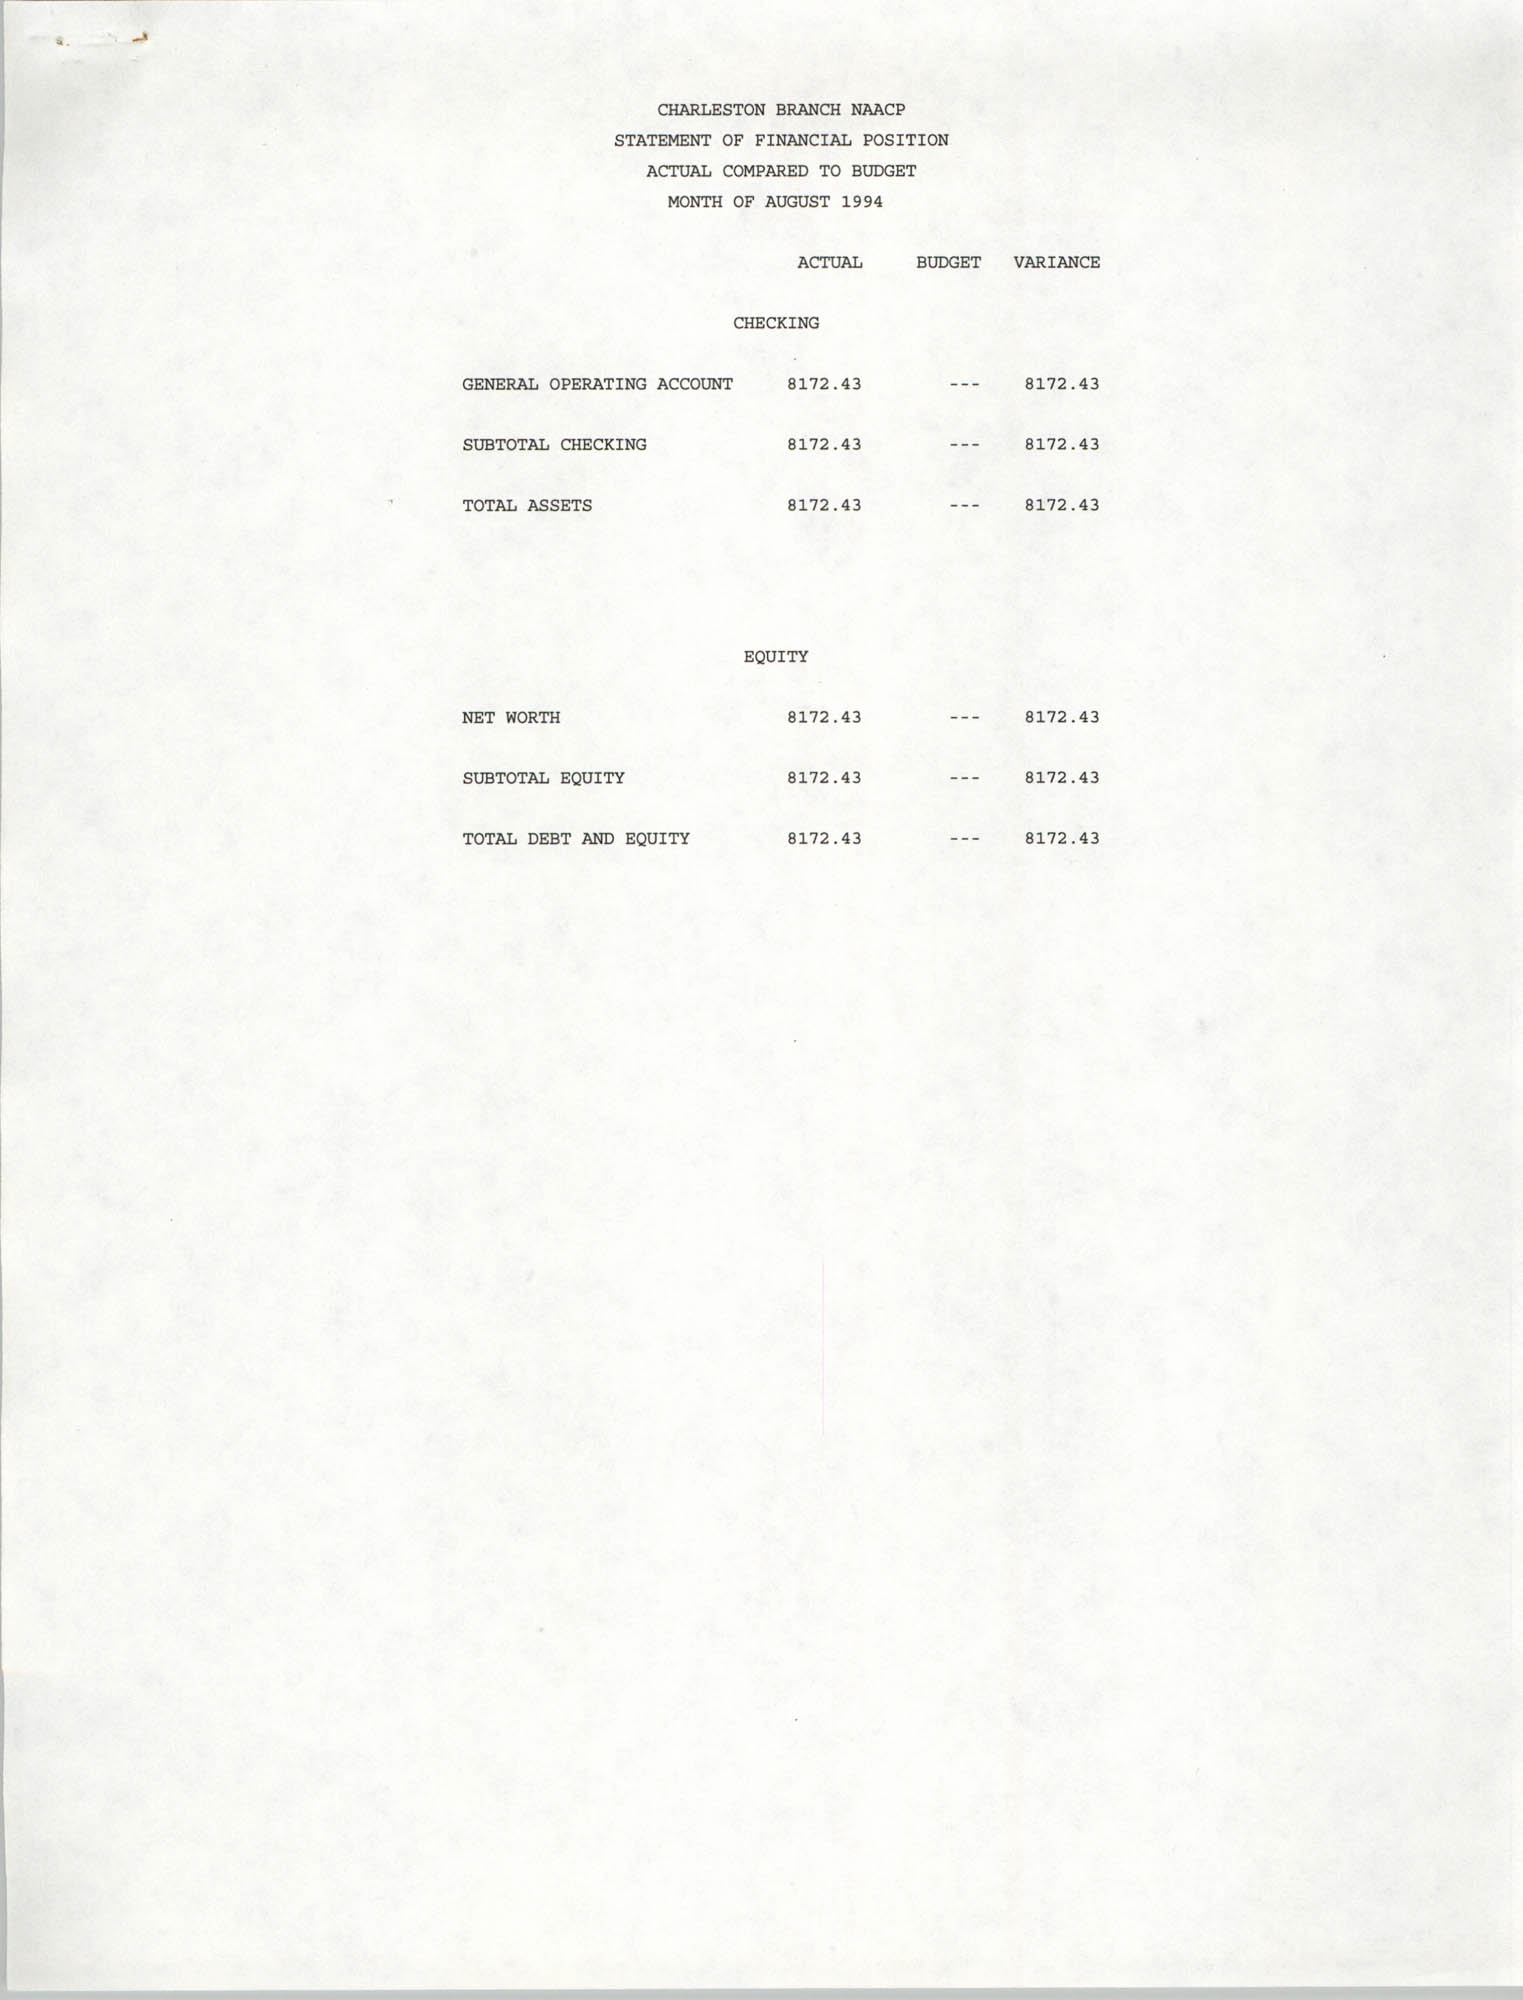 Charleston Branch of the NAACP Statement of Financial Position, August 1994